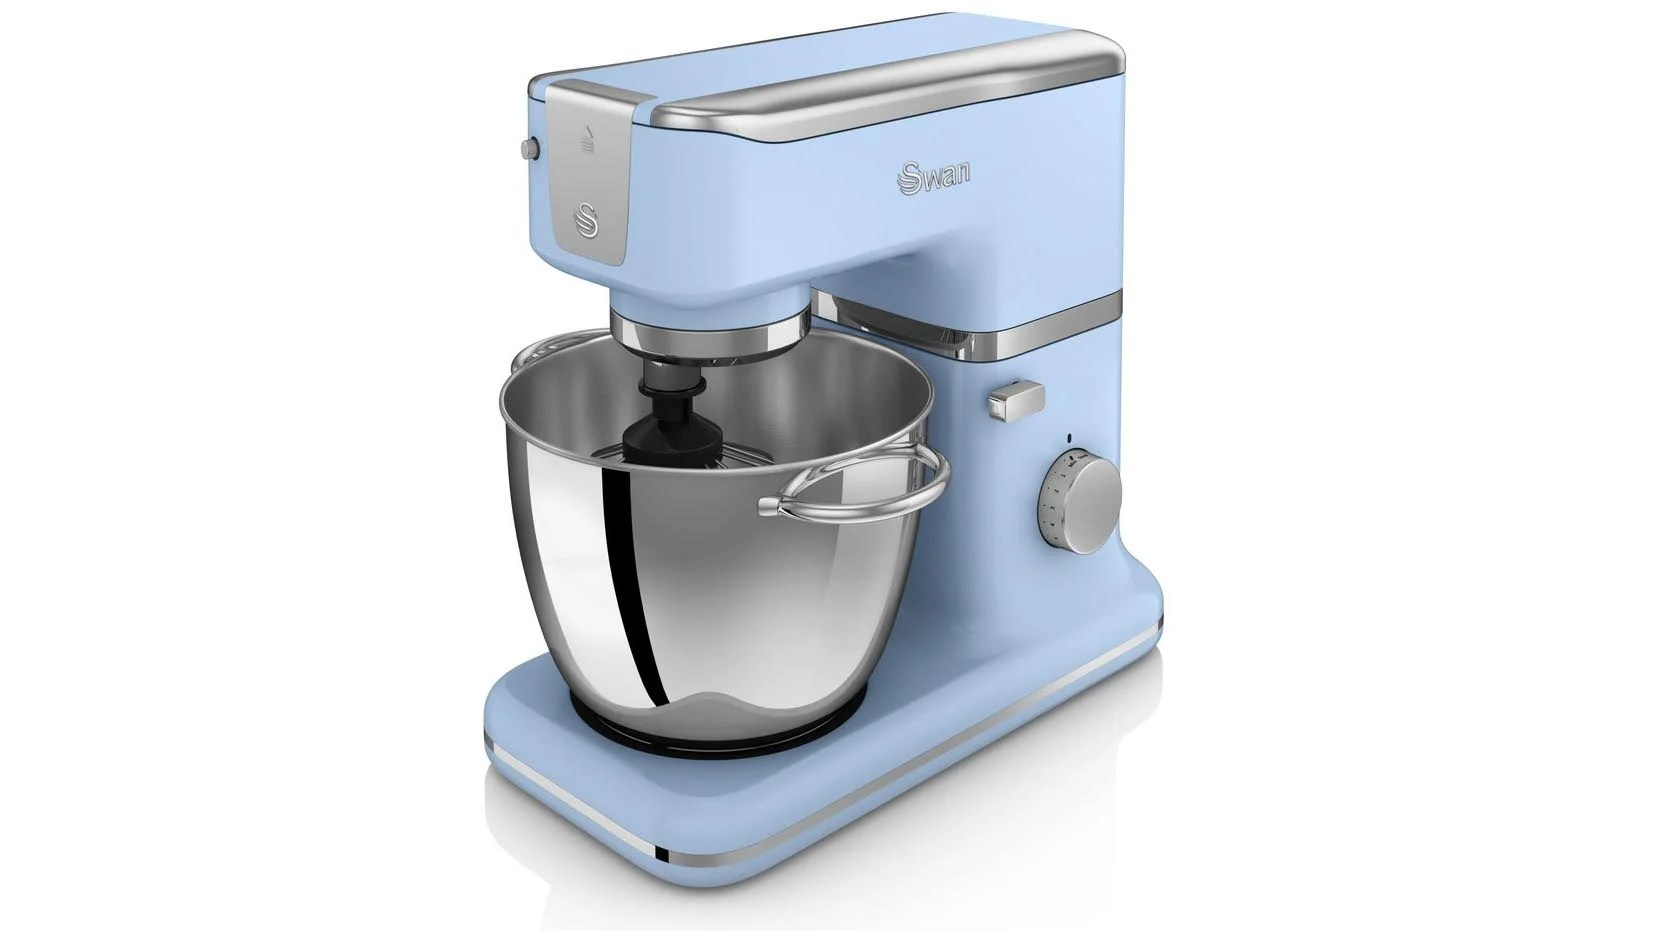 kitchen mixer black countertops best stand mixers superb from kitchenaid sage kenwood and swan expert reviews